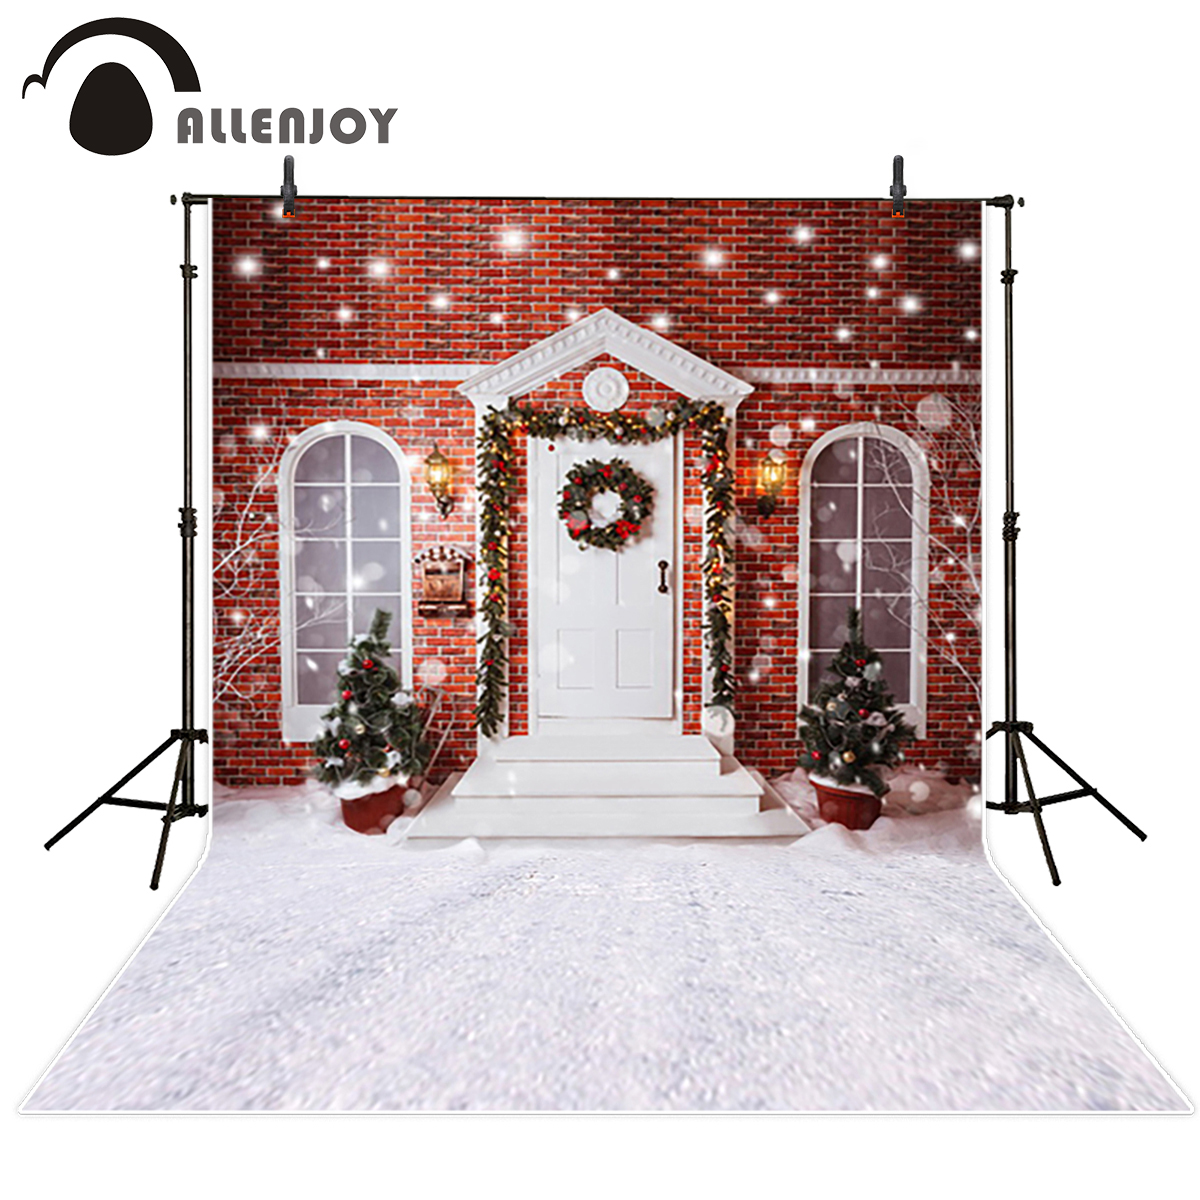 Allenjoy vinyl backdrops for photography Red brick wall door windows snow ground Christmas background for photographic studio